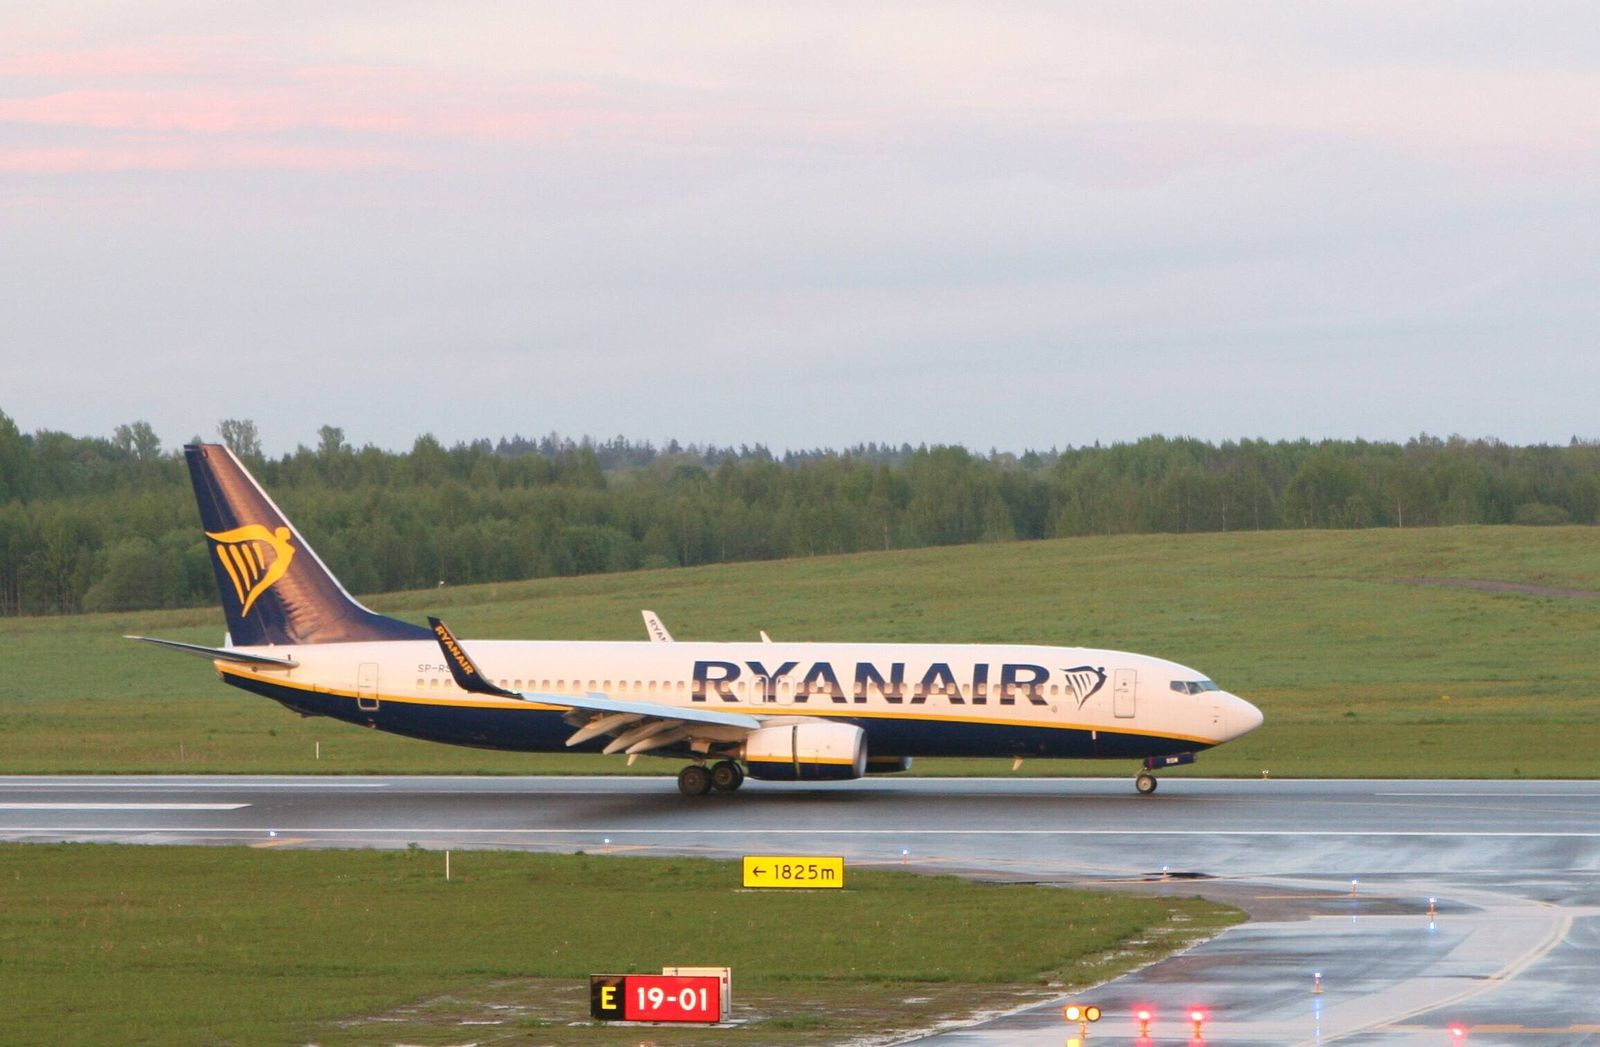 2021-05-23 Vilnius Lithuania. Ryanair Boeing 737 SP-RSM lands in Vilnius from Minsk at about 21:30 local time on Sunday